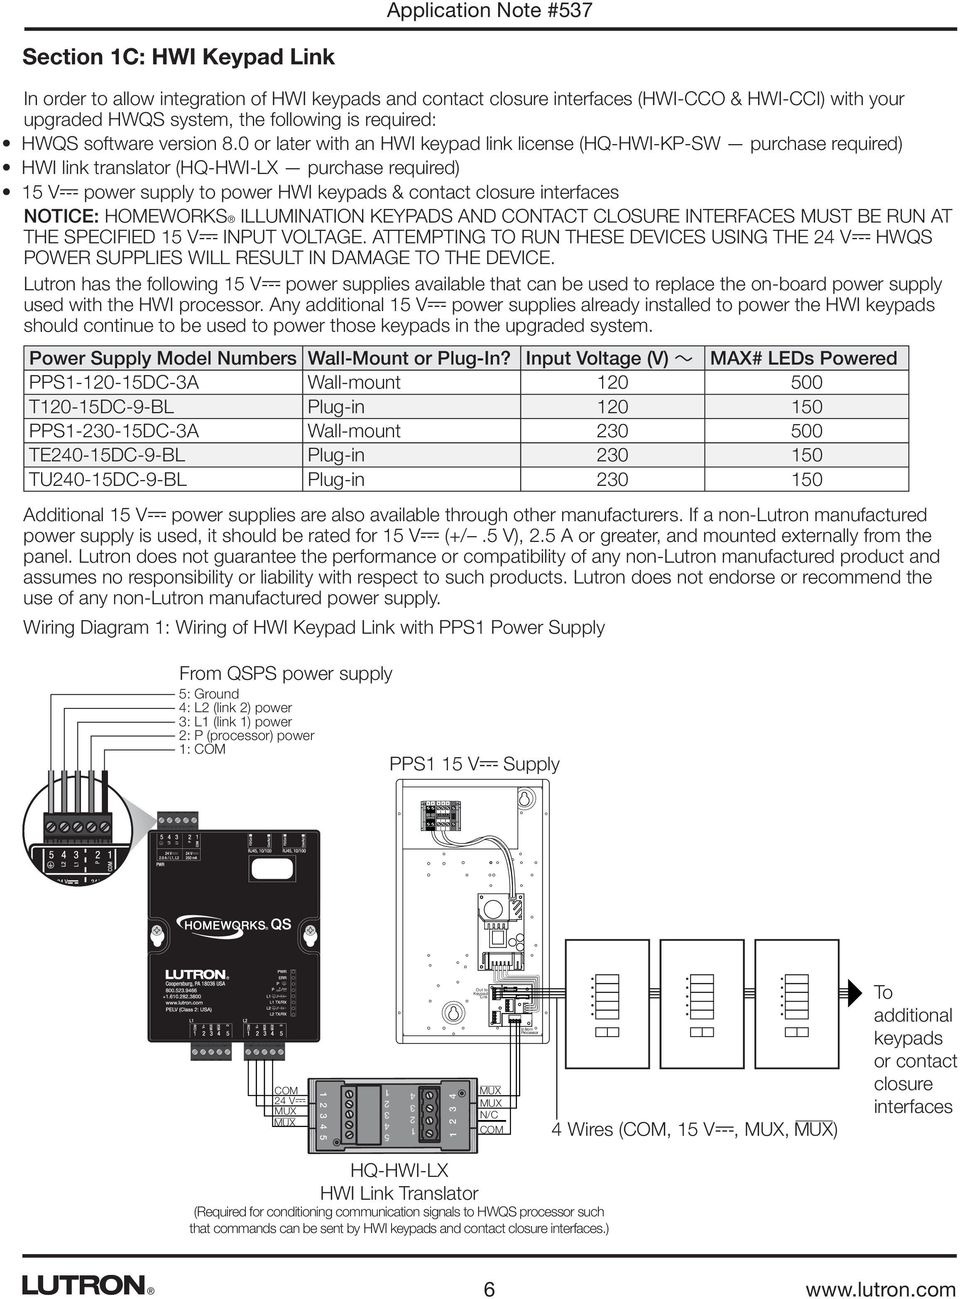 Application Note 537 Revision D August 2015 Solutions For Upgrading Lutron Wiring Diagram Uk 0 Or Later With An Hwi Keypad Link License Hq Kp